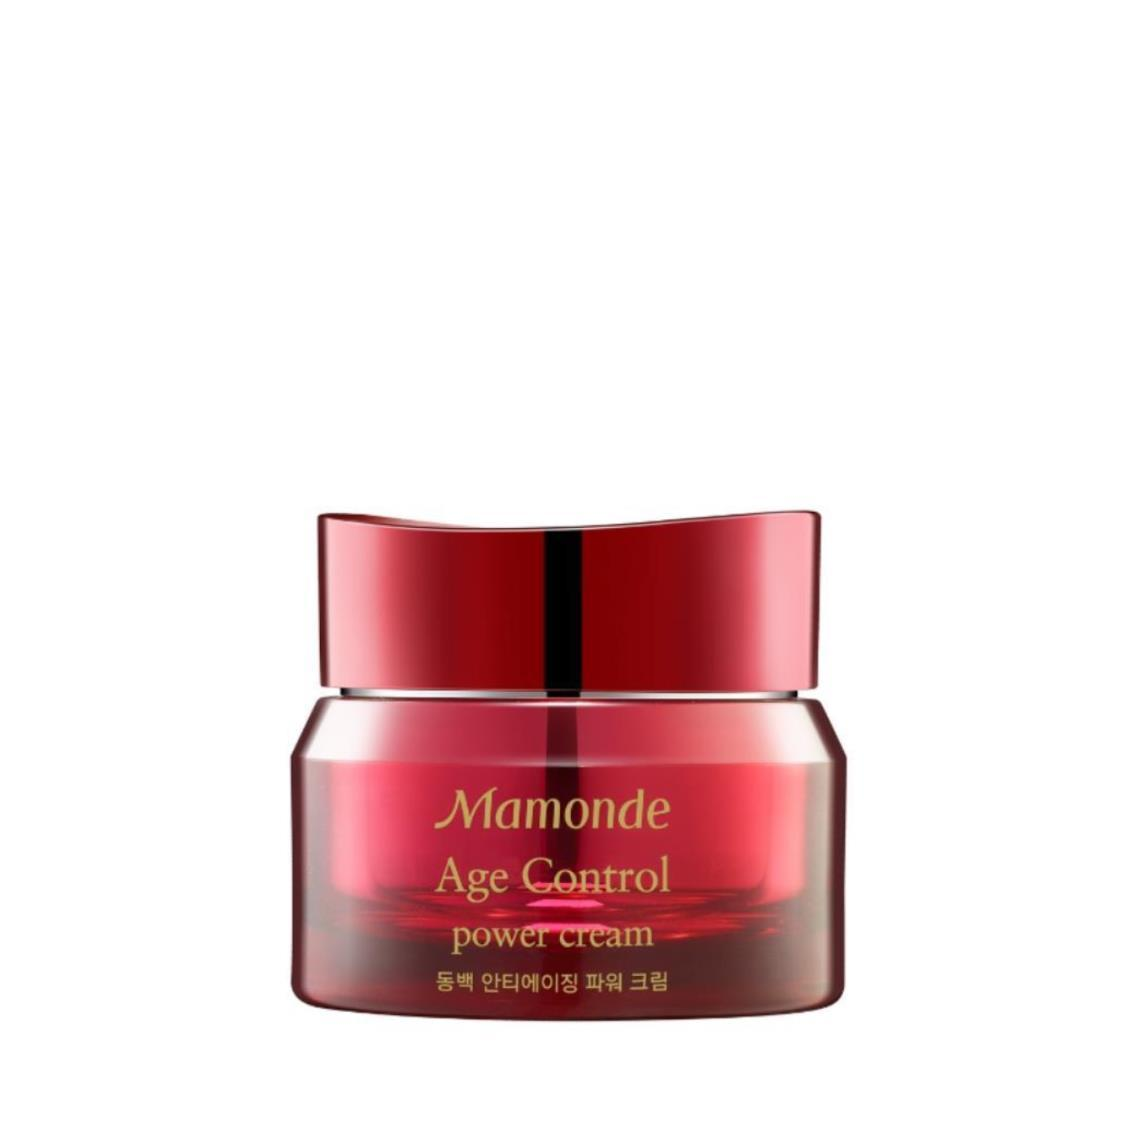 Age Control Power Cream 50ml